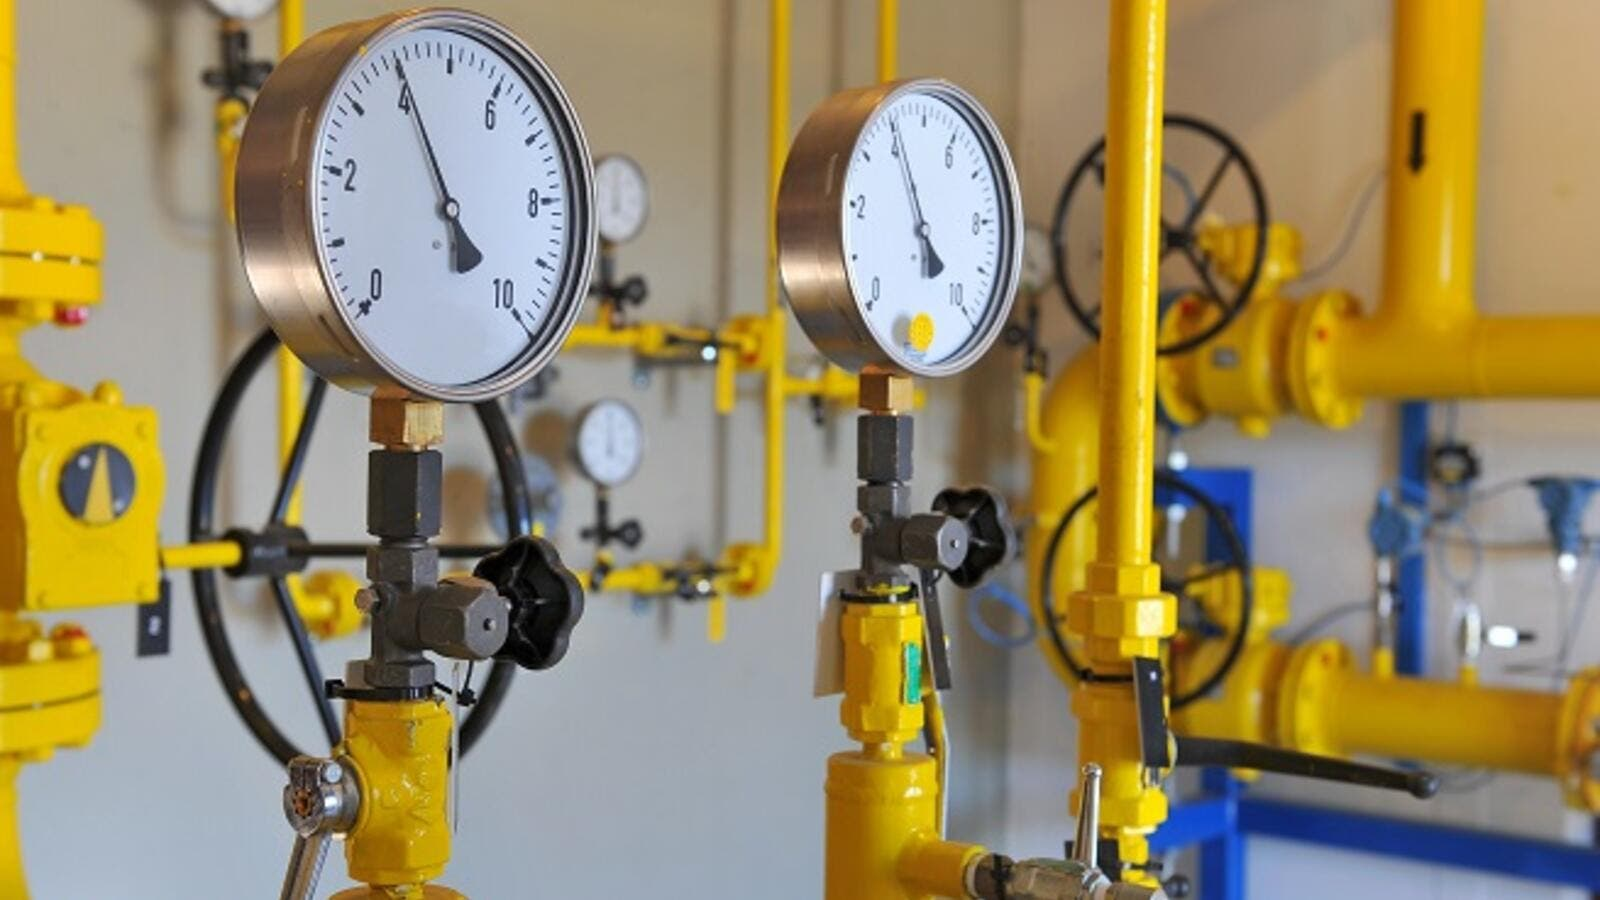 Using gas in the industrial sector lowers operational costs between 20 and 50 per cent. (Shutterstock)